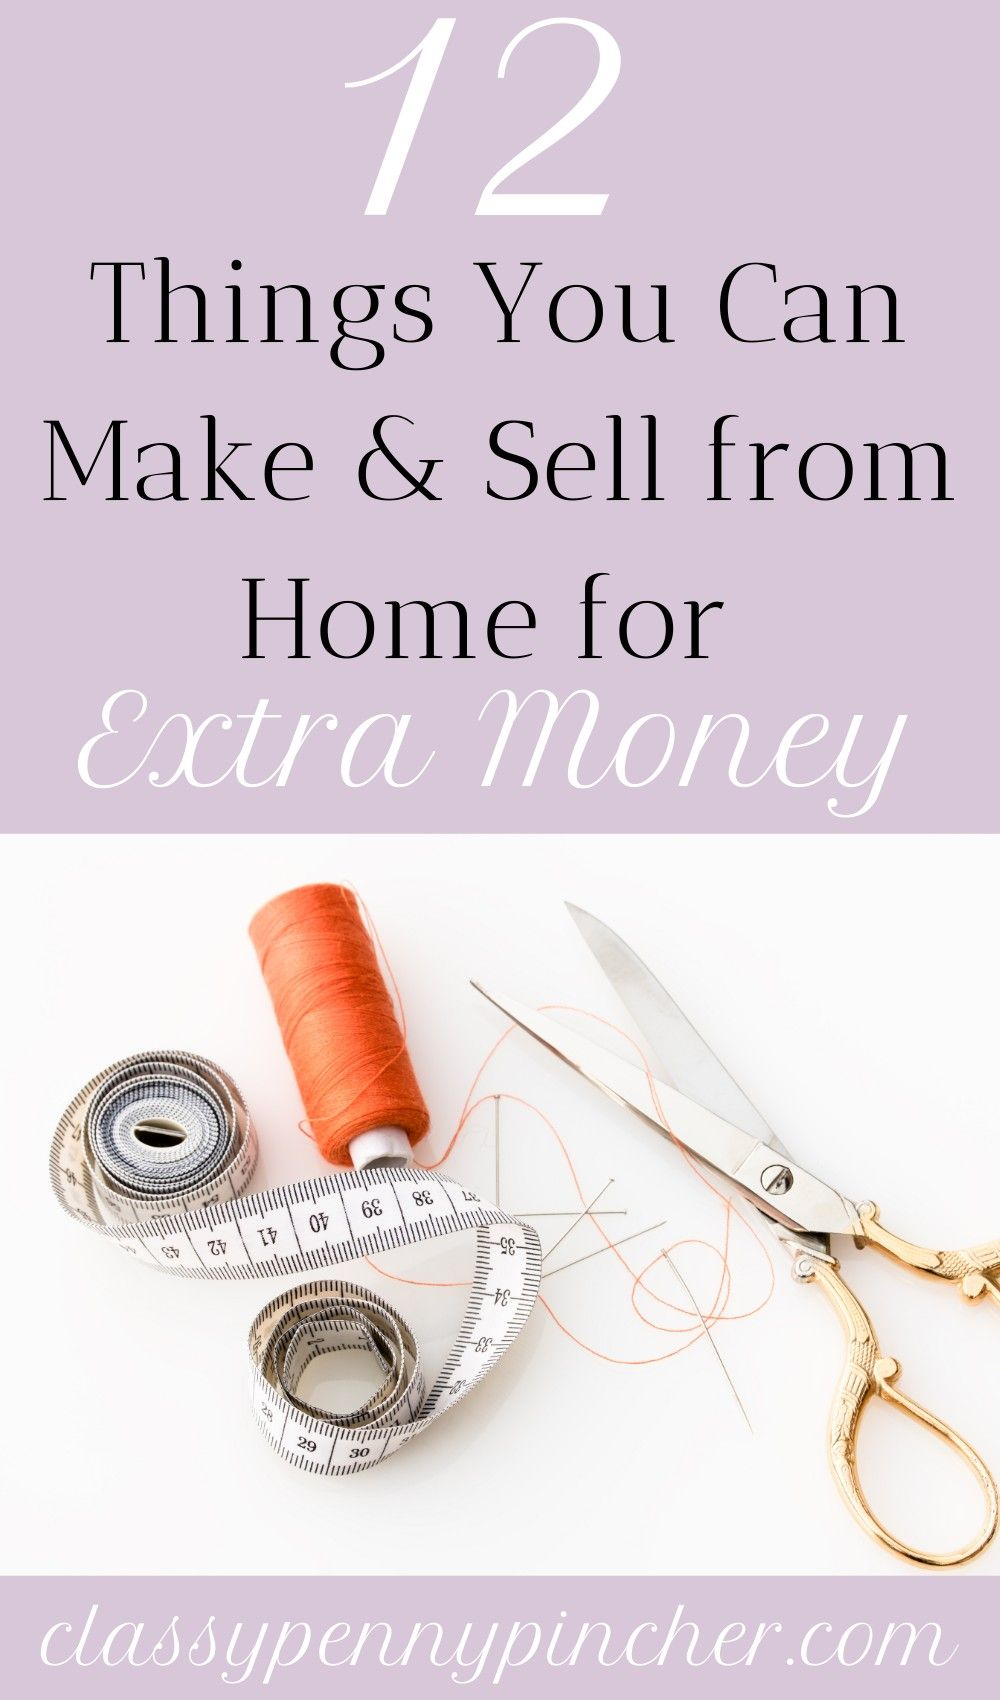 12 Things to Make and Sell from Home for Extra Money in